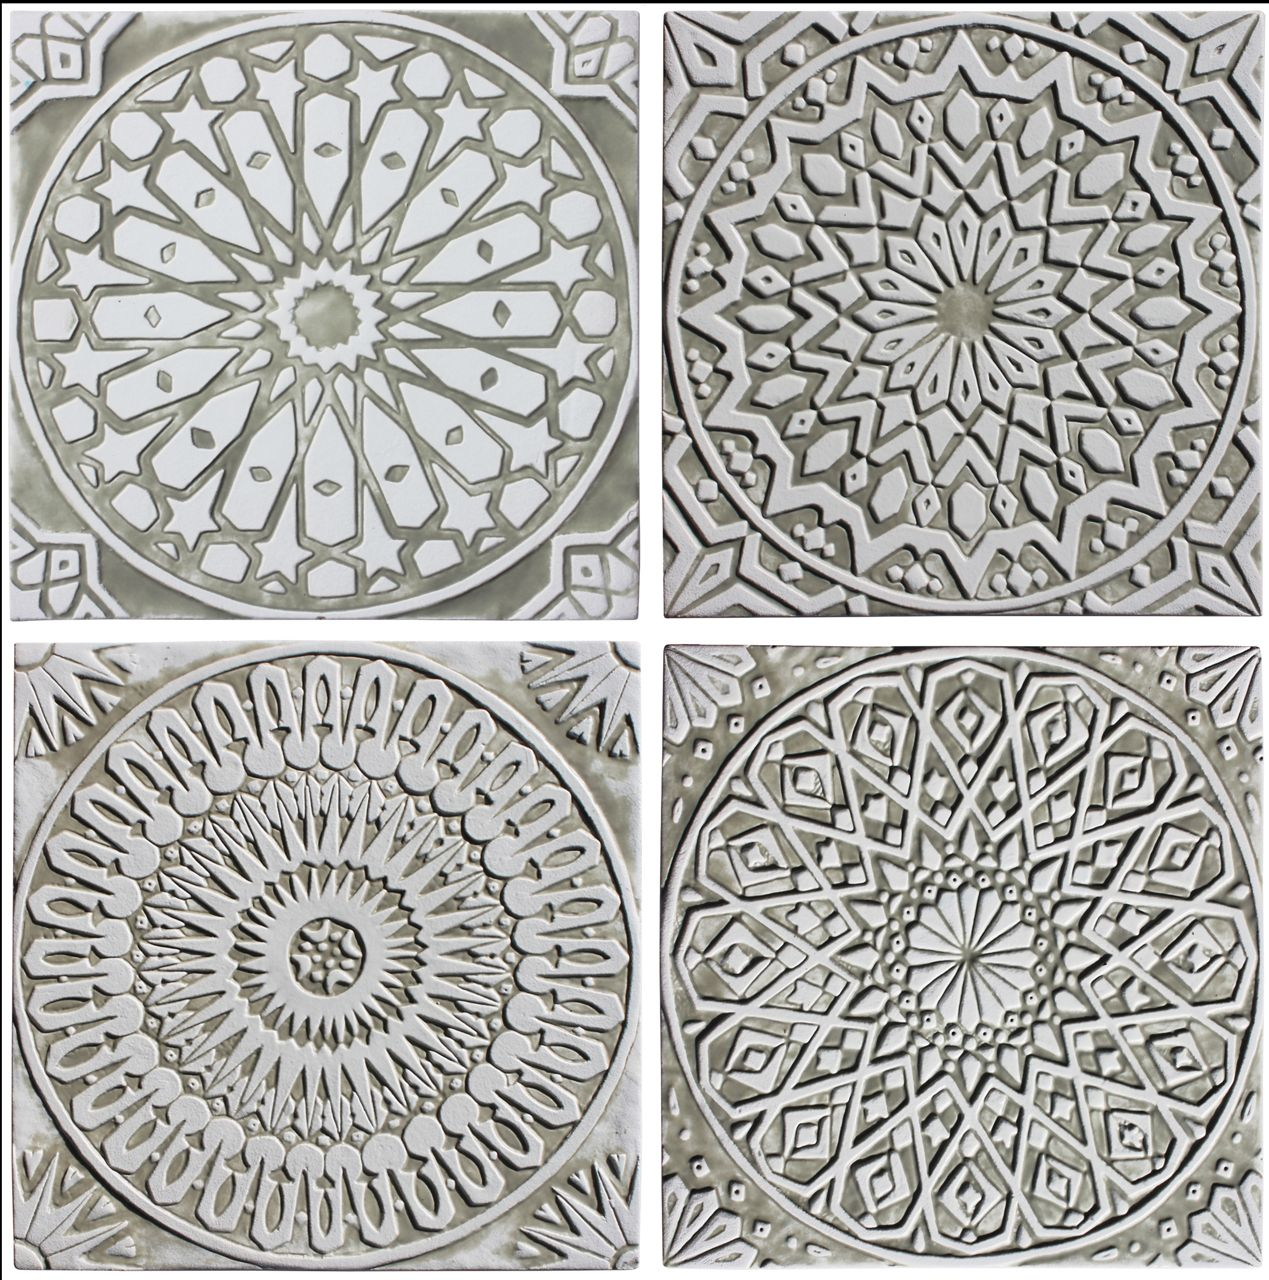 Ceramic Wall Art Moroccan Designs White Collection Hand Made Tiles Architectural Ceramics Www G Moroccan Wall Art Ceramic Wall Art Geometric Wall Art